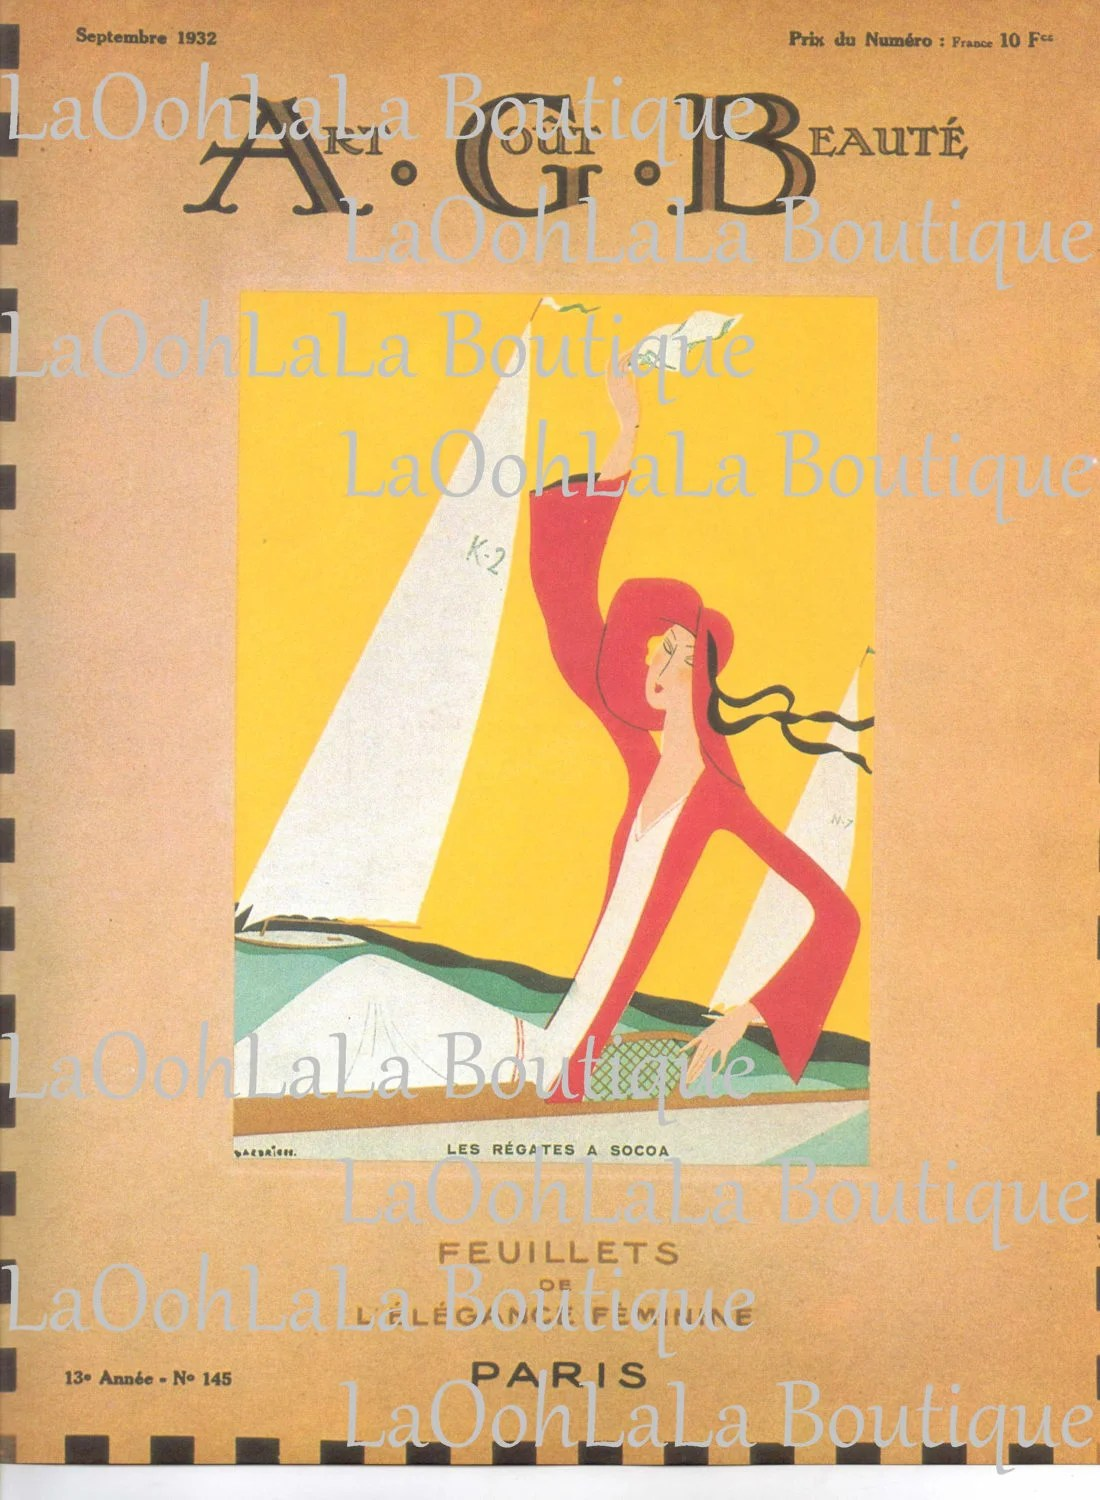 Boutique Deco Paris 1932 Paris Deco Art Goût Beauté September French Fashion Magazine Cover Feuillets De L élégance Féminine Les Régates A Socoa Sailboat Decor